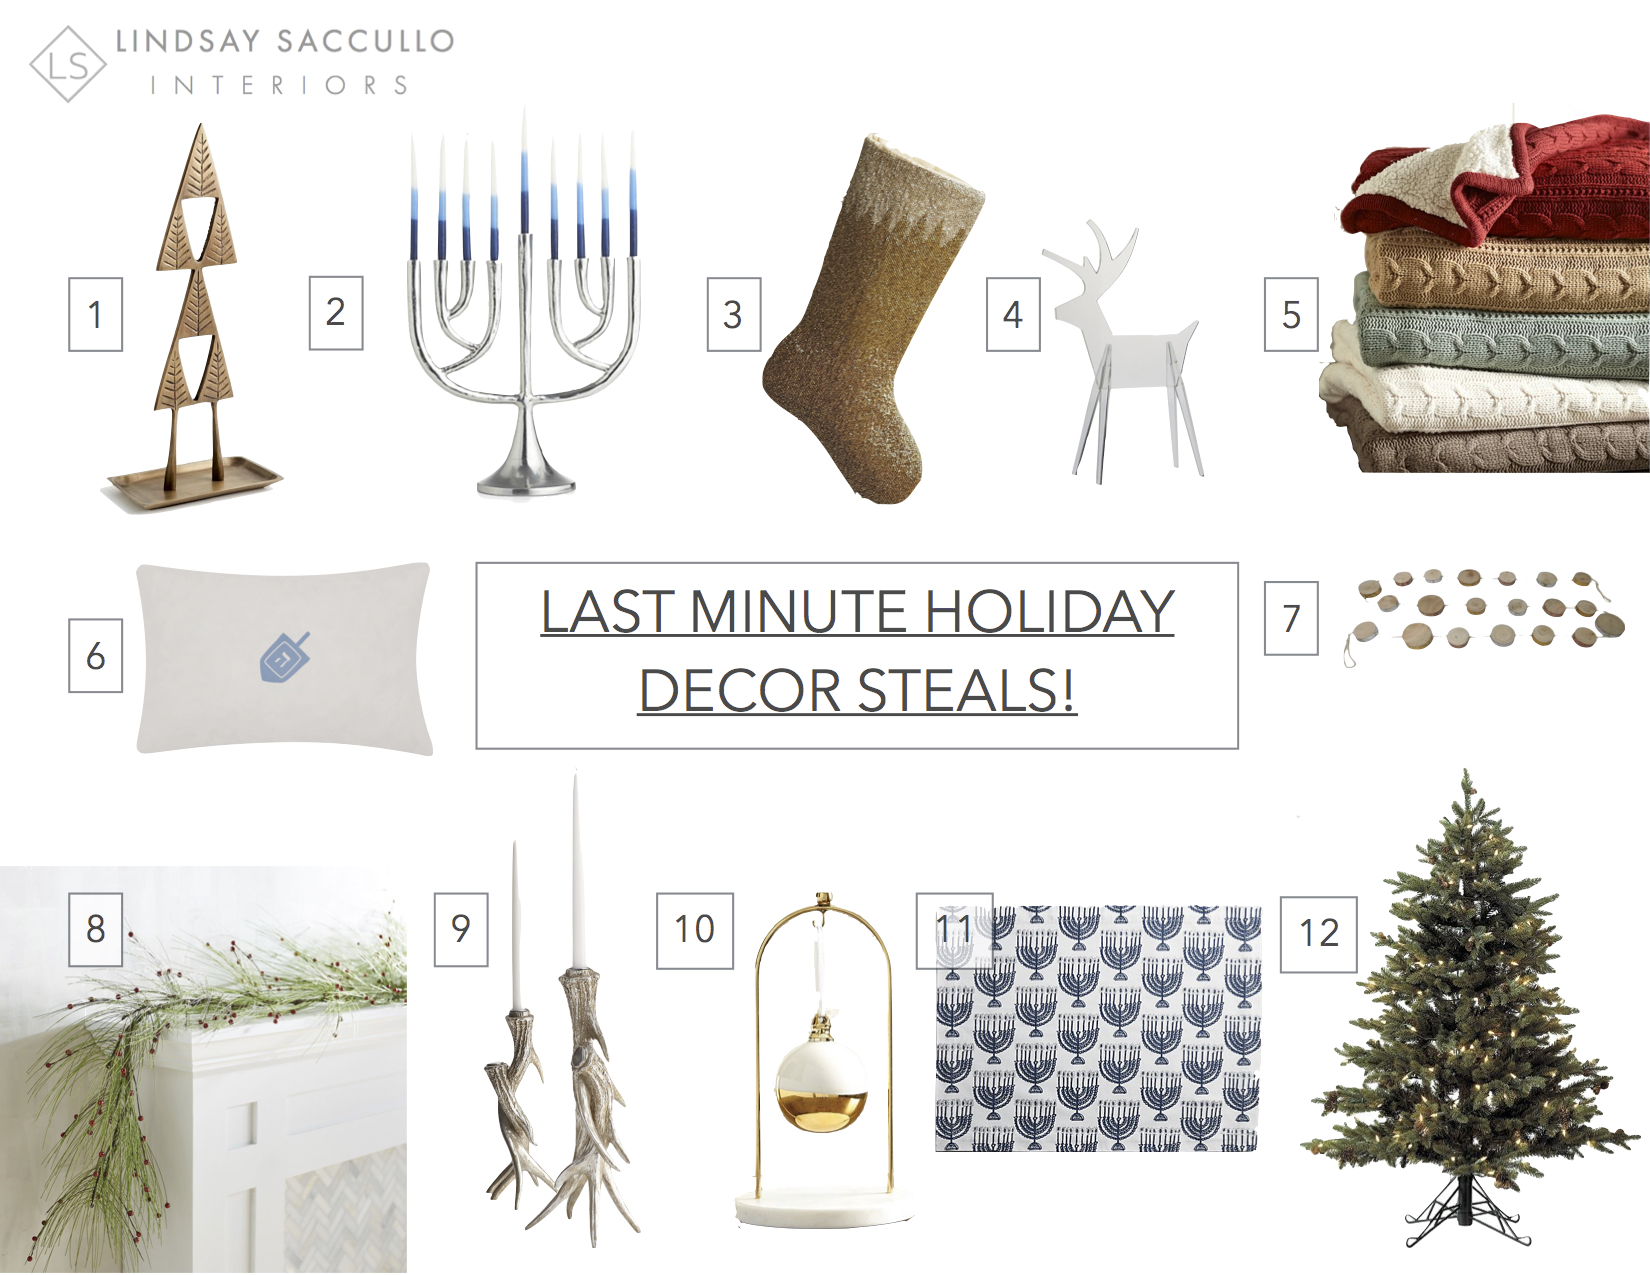 // 1.  Deco Metal Tree Object   //   2.   Modern Menorah  // 3.  Gold Ombre Beaded Stocking  //  4.   Acrylic Reindeer   //   5.   Cozy Cableknit Throw  //  6.   Chanukah Pillow  //  7.   Wood Garland  //  8.   Garland  //   // 9.     Antler Candleholders   // 10.  Ornament Display Stand  //    11.   Menorah Placemat  //  12.   4' Spruce Christmas Tree   //